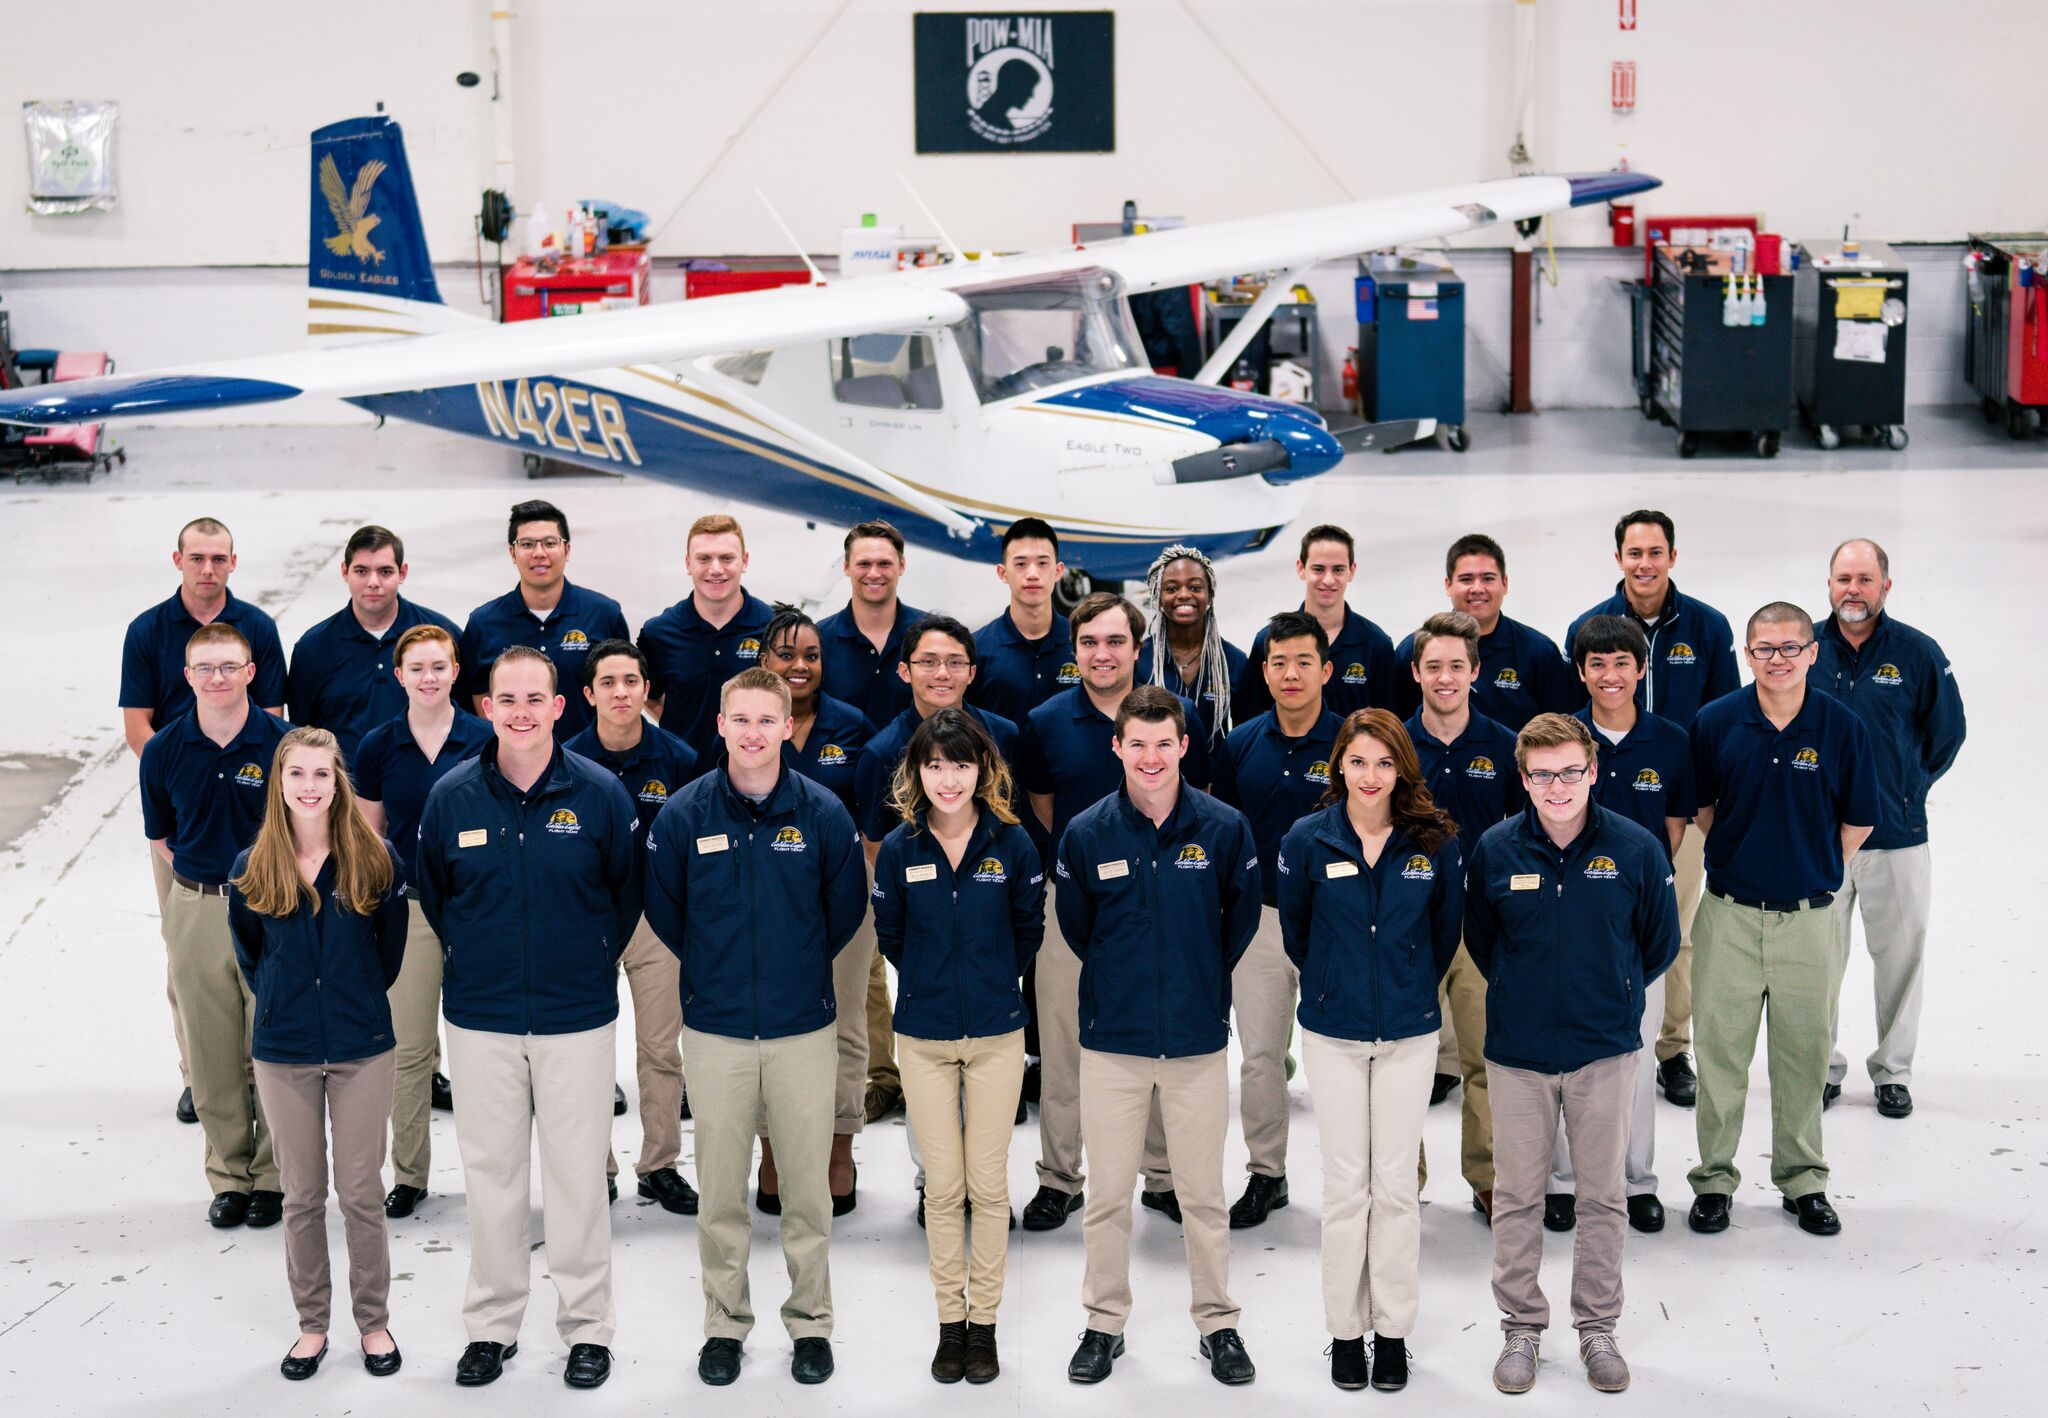 Embry-Riddle's Golden Eagles Flight Team